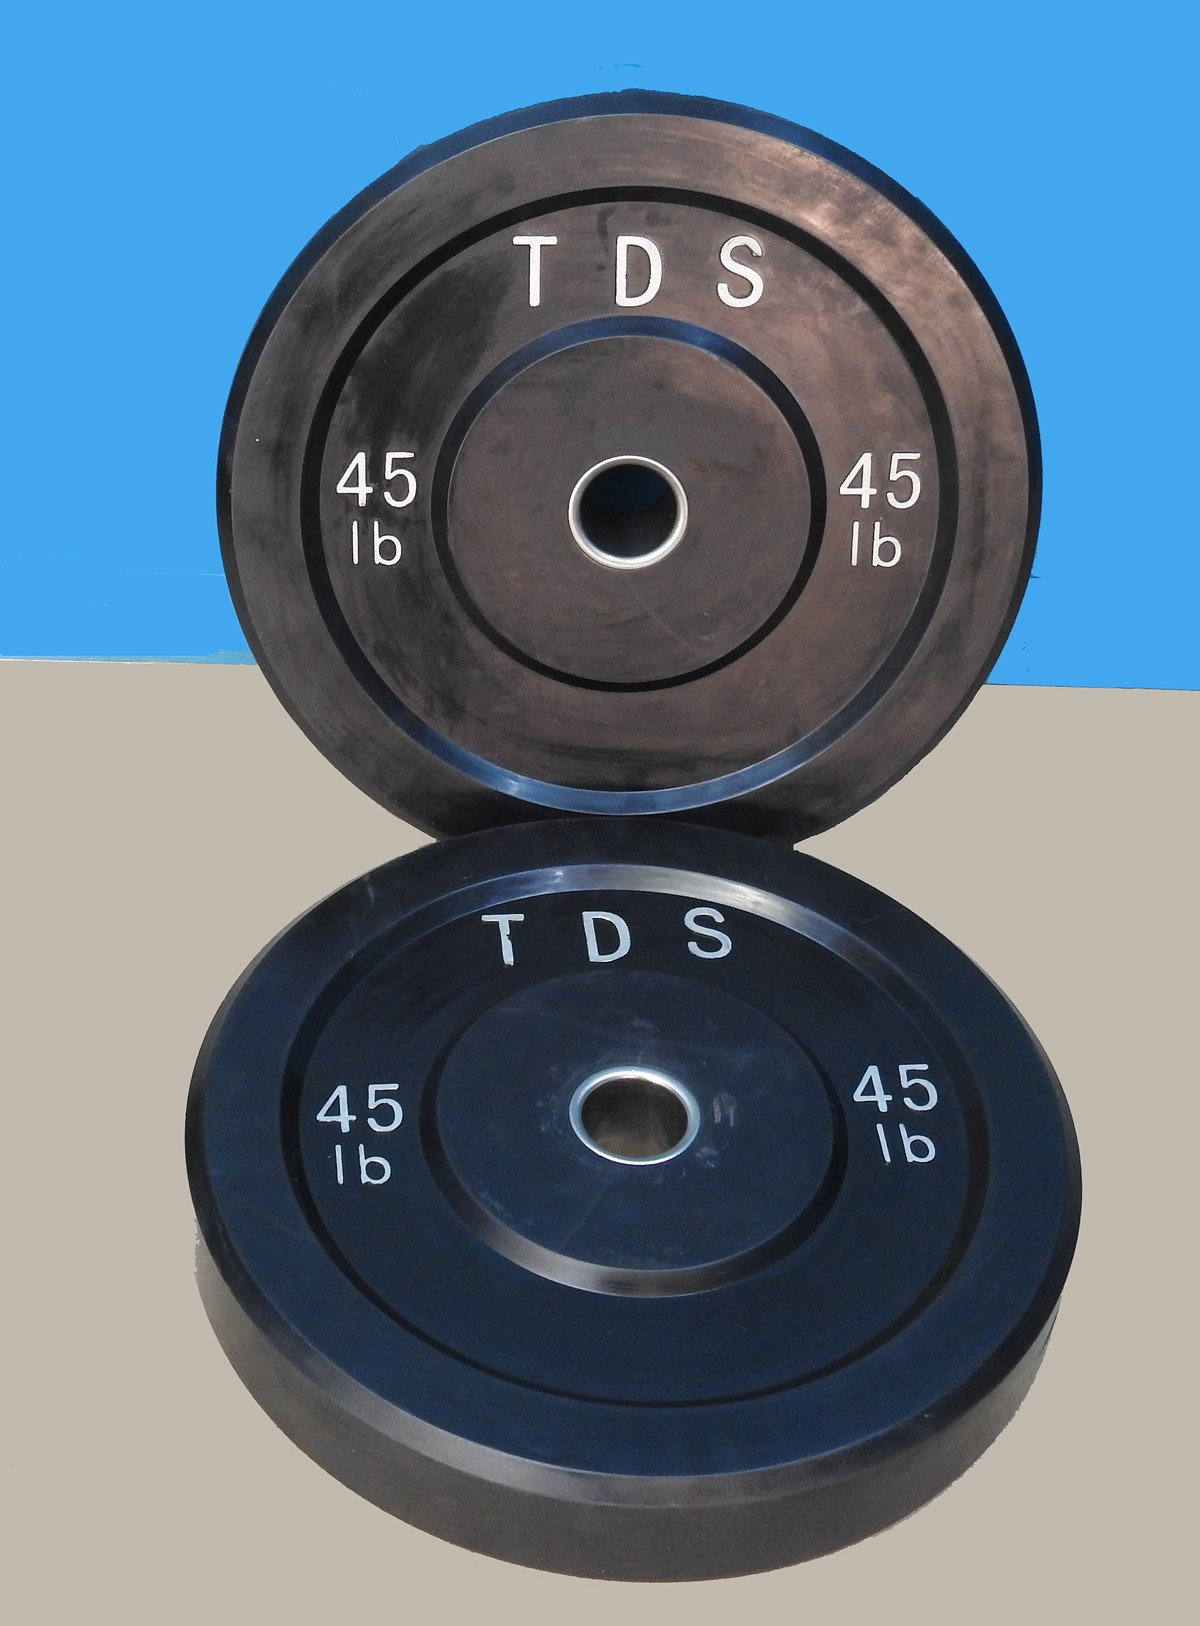 TDS 90lbs (2 x 45lb) Virgin All Rubber Bumper Plates. Designed for CrossFit workout and Fitness Training. (Purpose of placing Steel plates inside is only to reduce production costs, will split soon.)